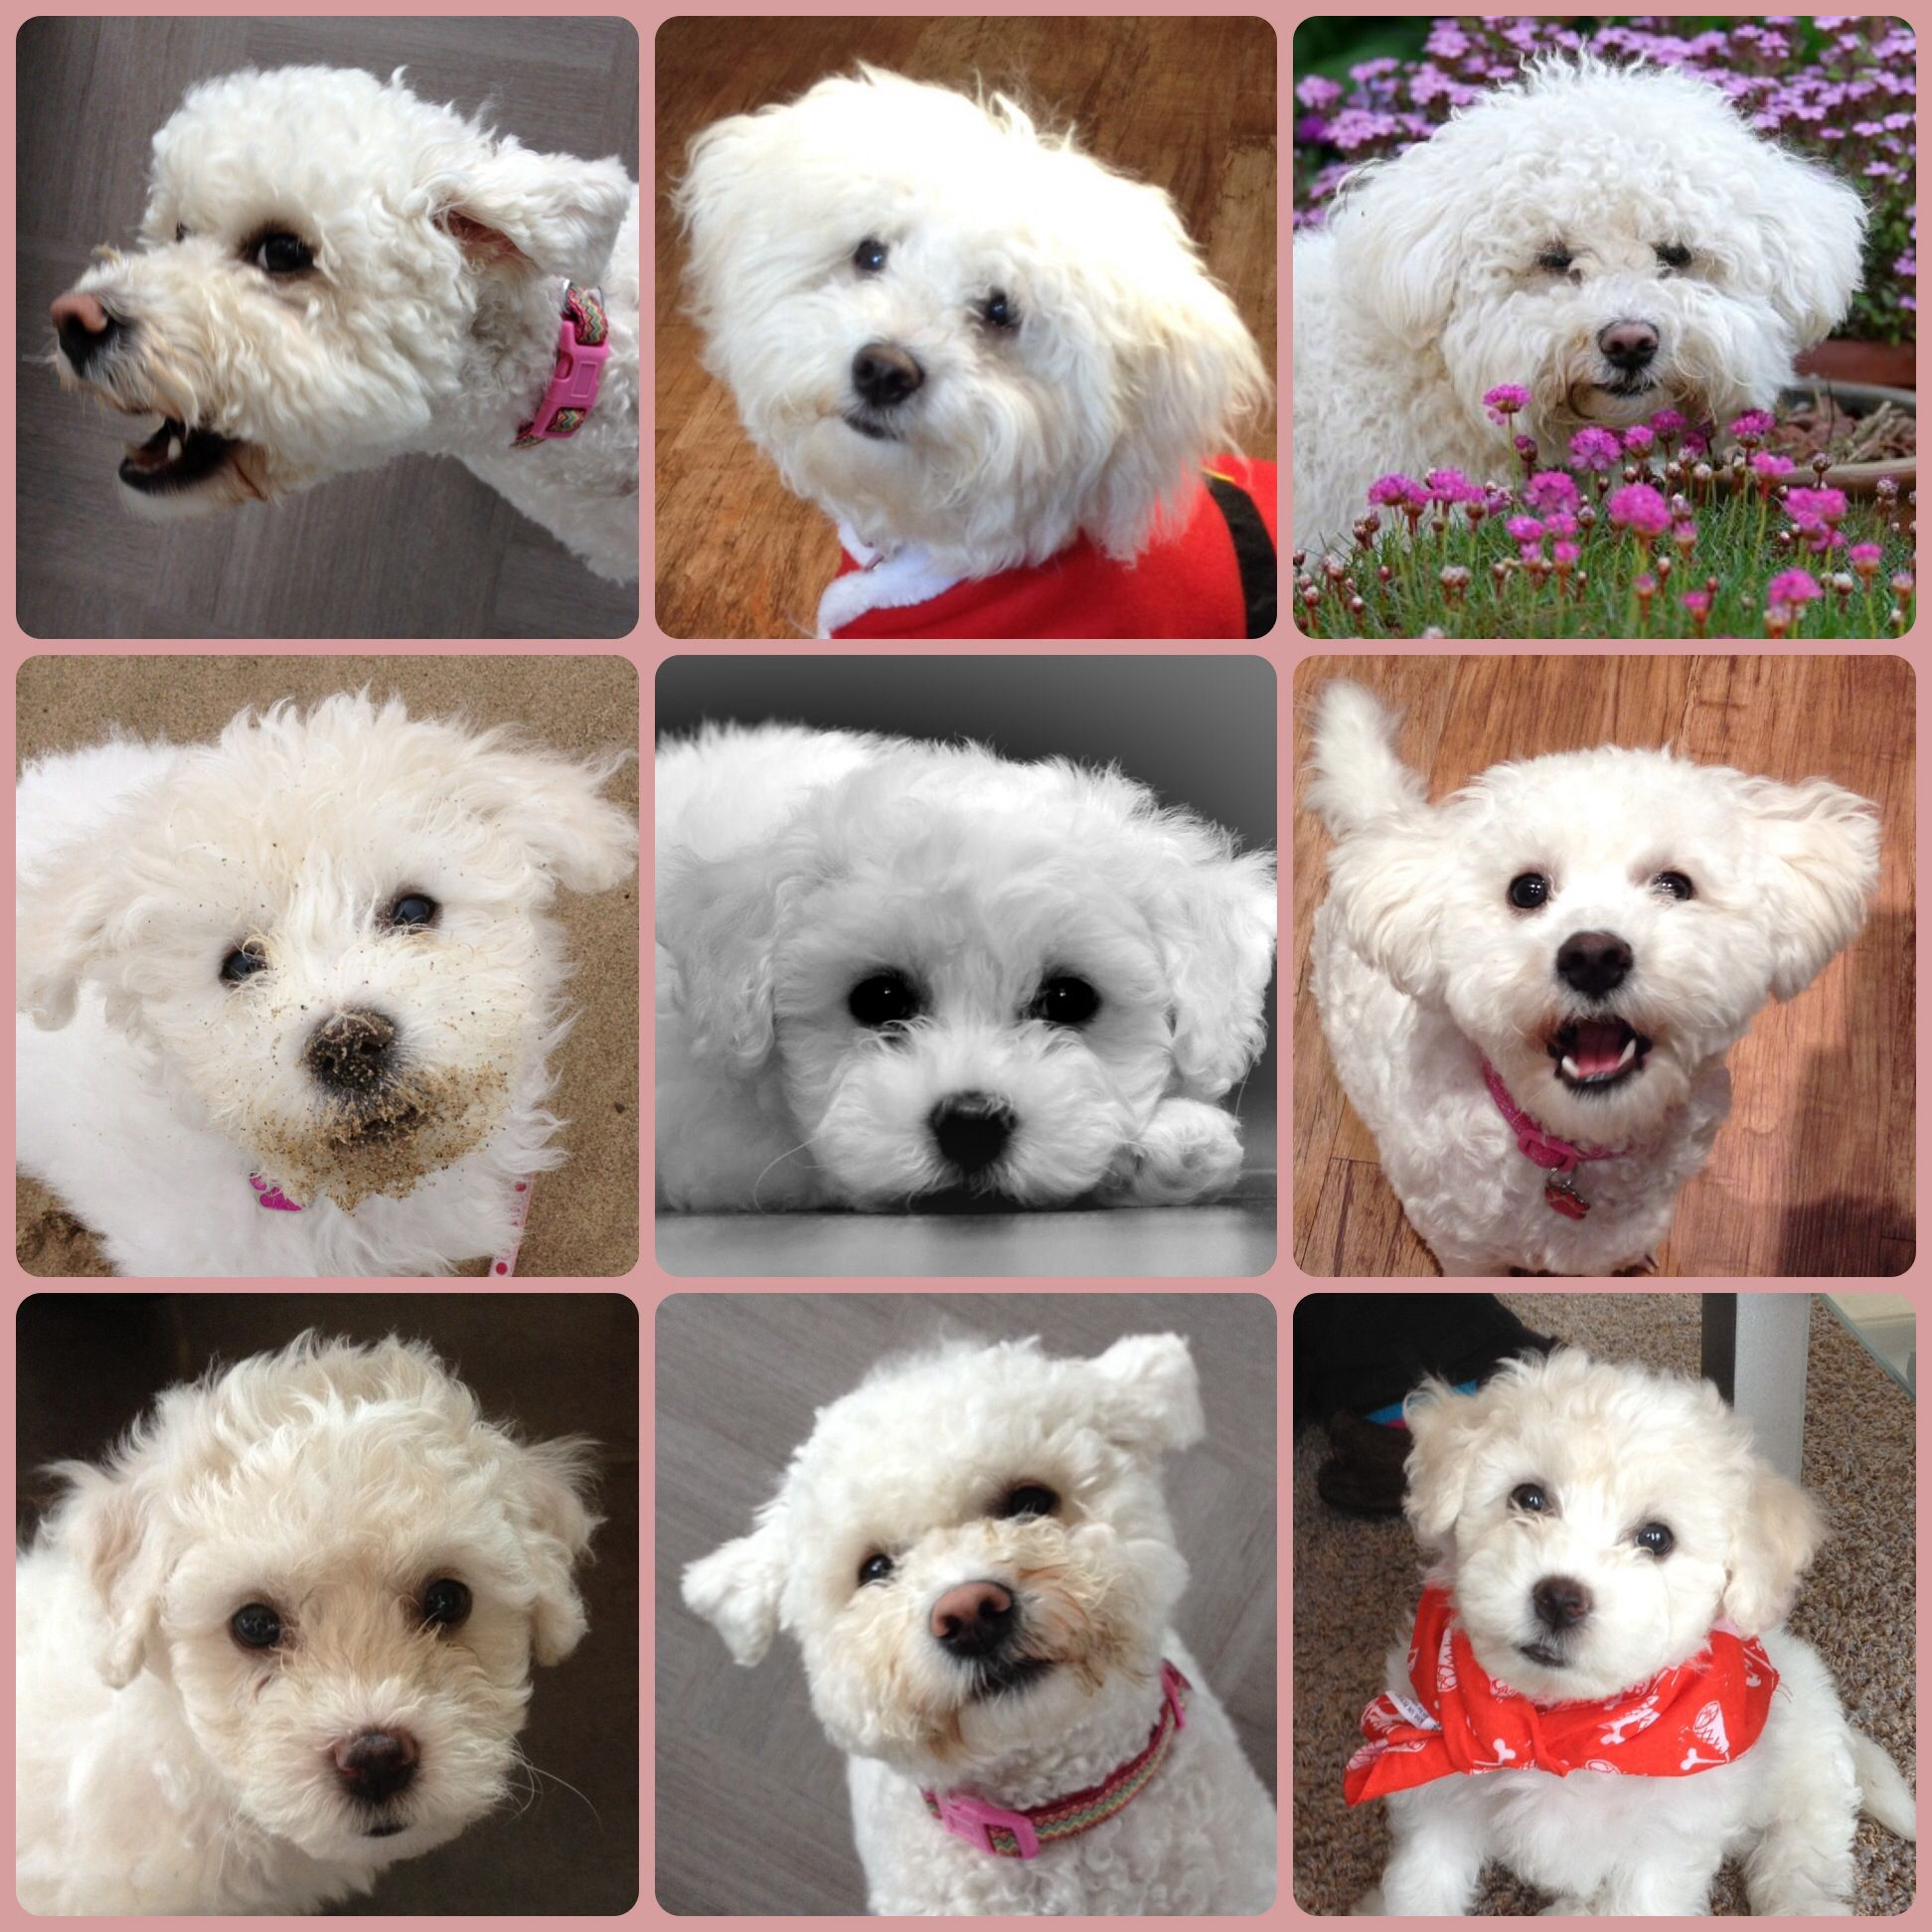 The many faces of Milly the Bichon